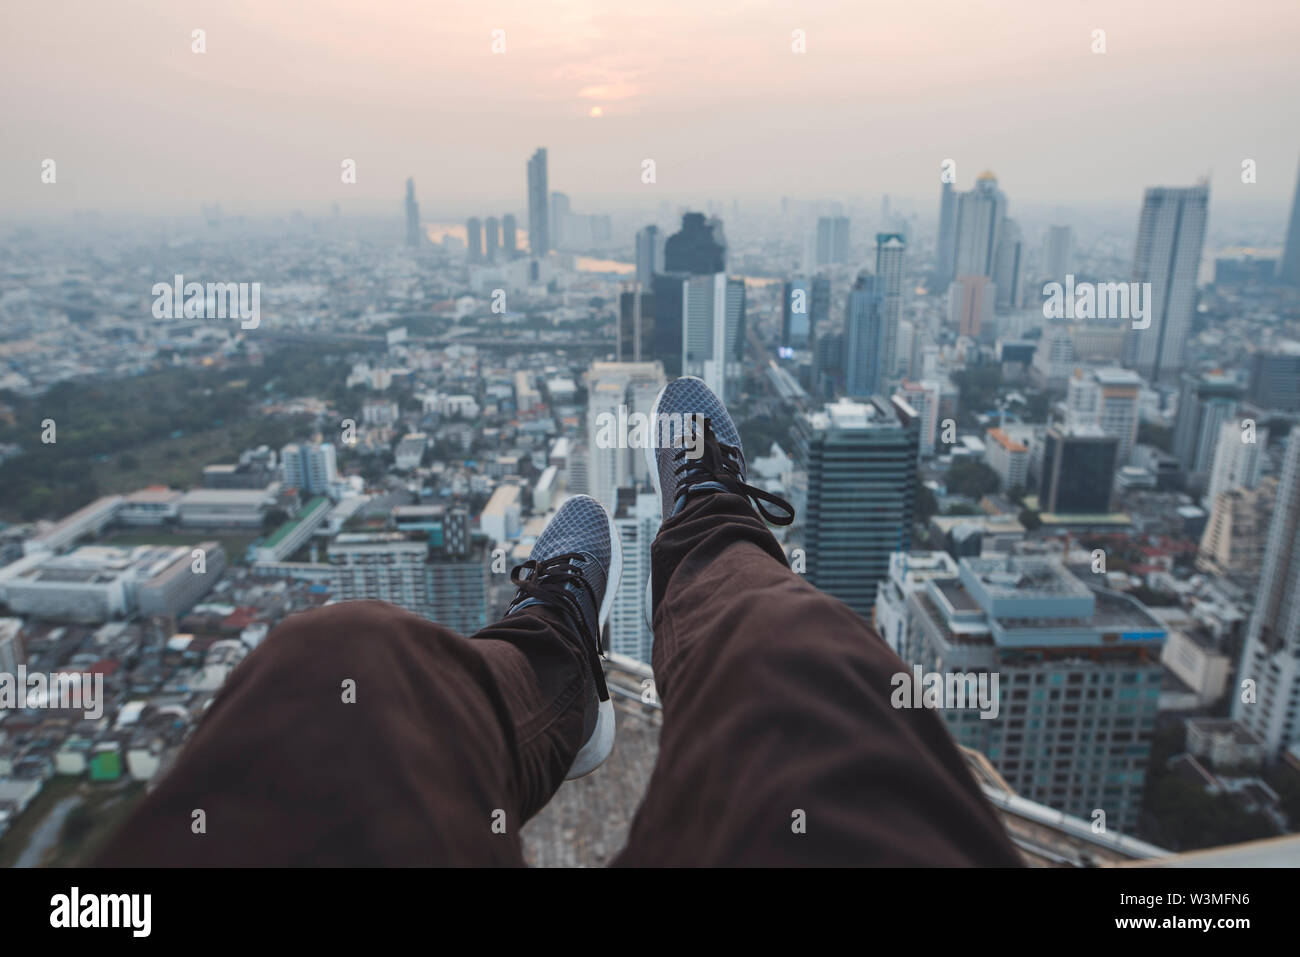 Legs of young man and cityscape of Bangkok, Thailand - Stock Image